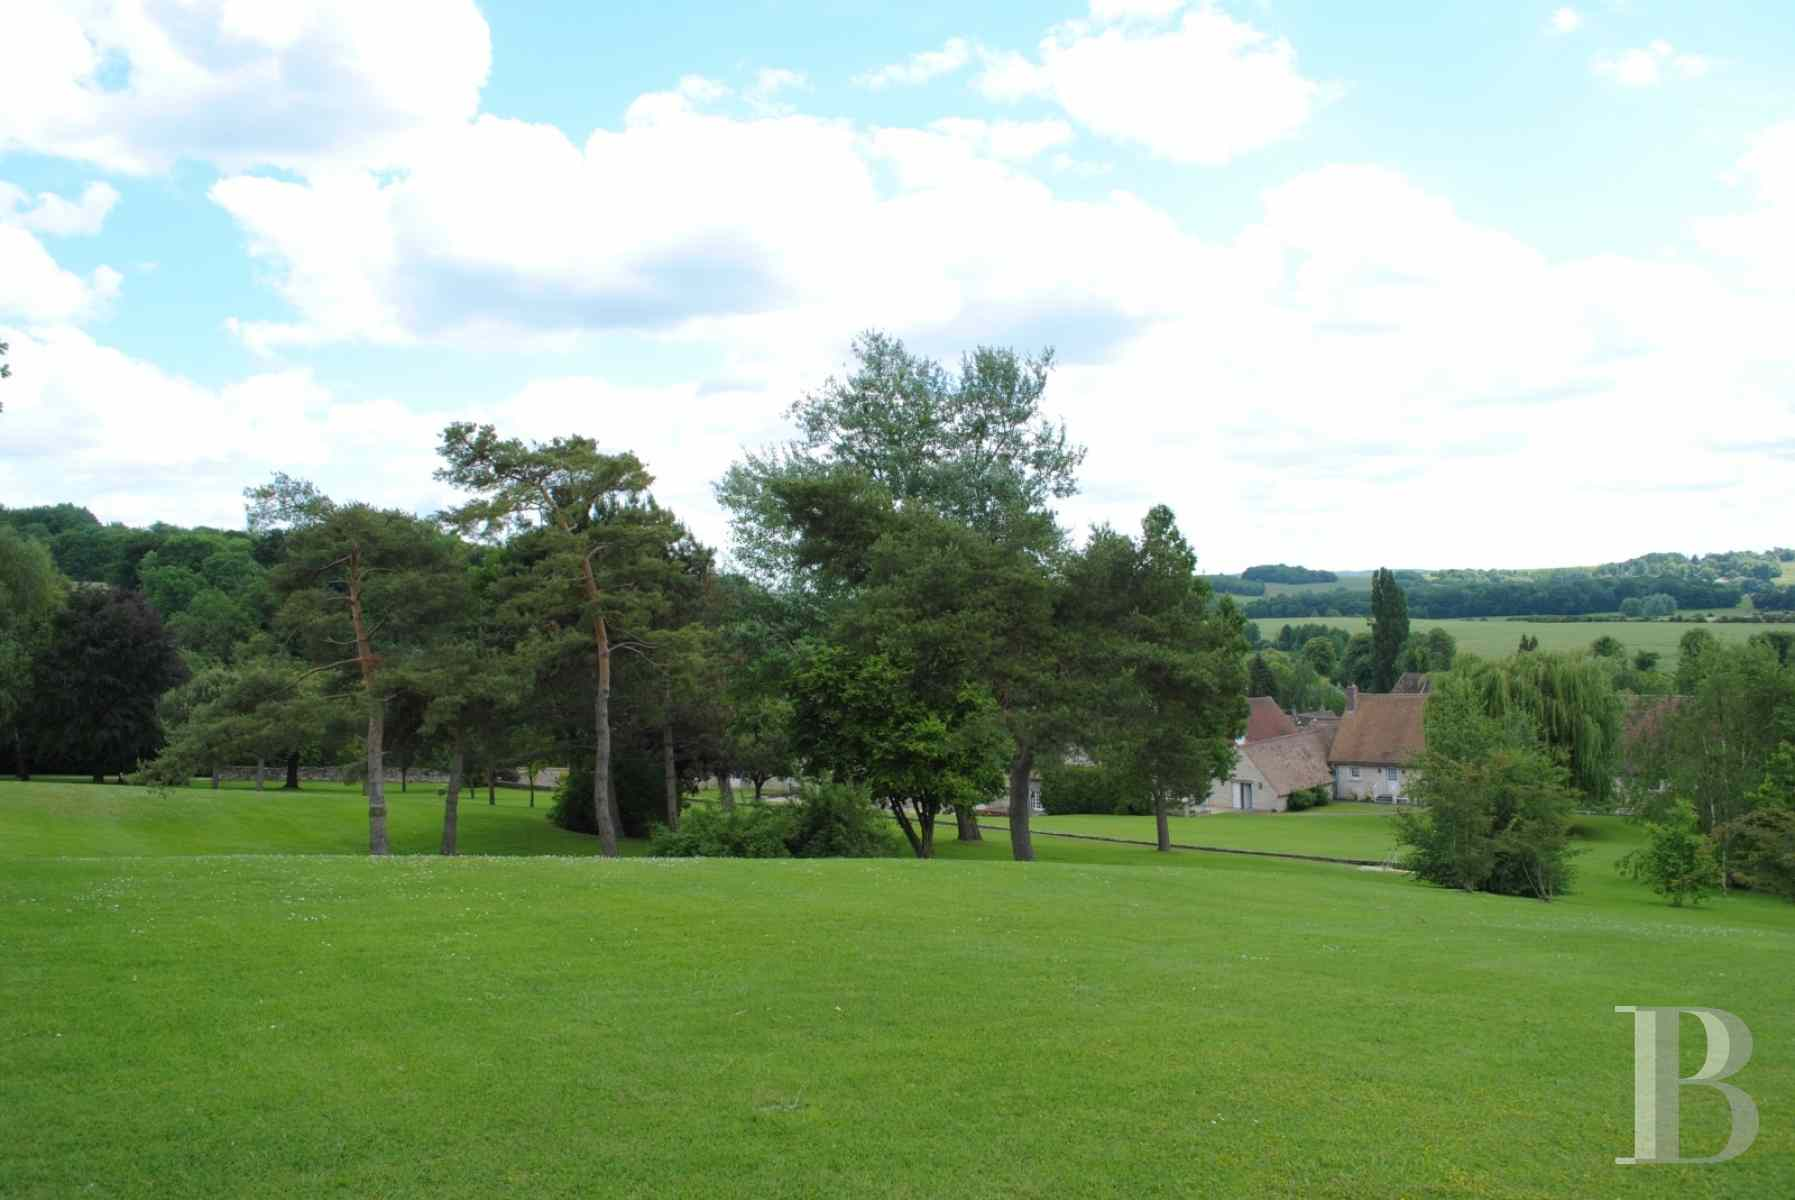 french farms for sale picardy vexin seigneurial - 13 zoom